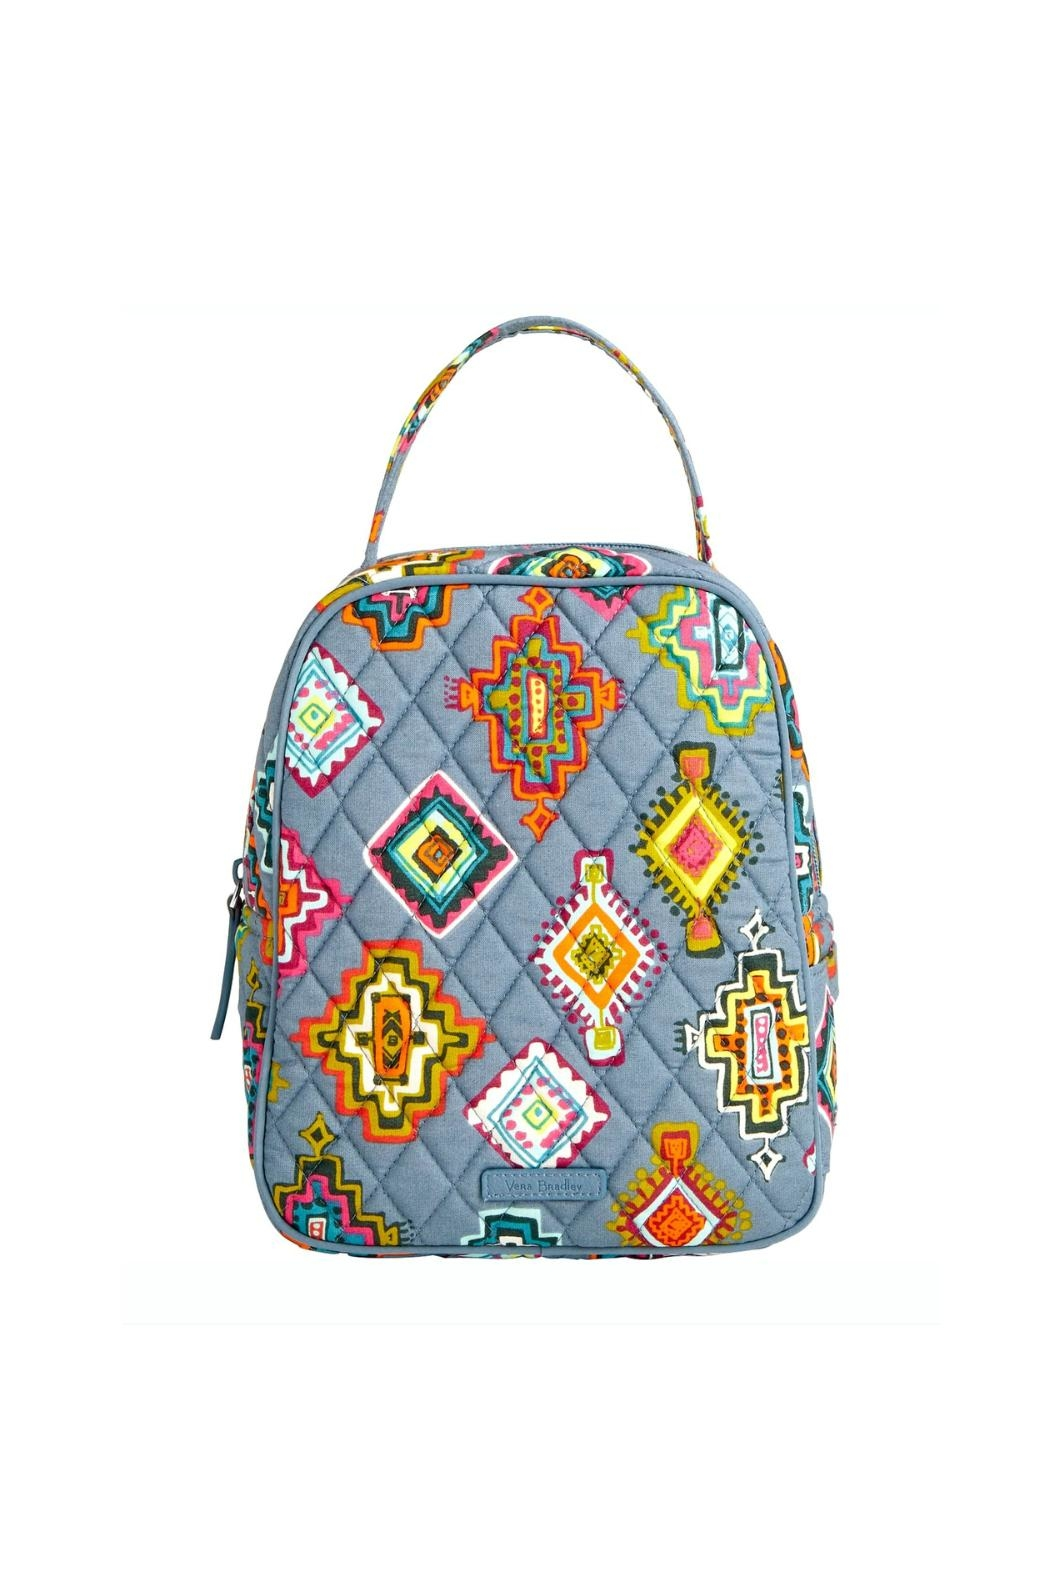 d73dc5a3fd7a Vera Bradley Painted Medallions Lunch Bunch from Kentucky by Mimi s ...